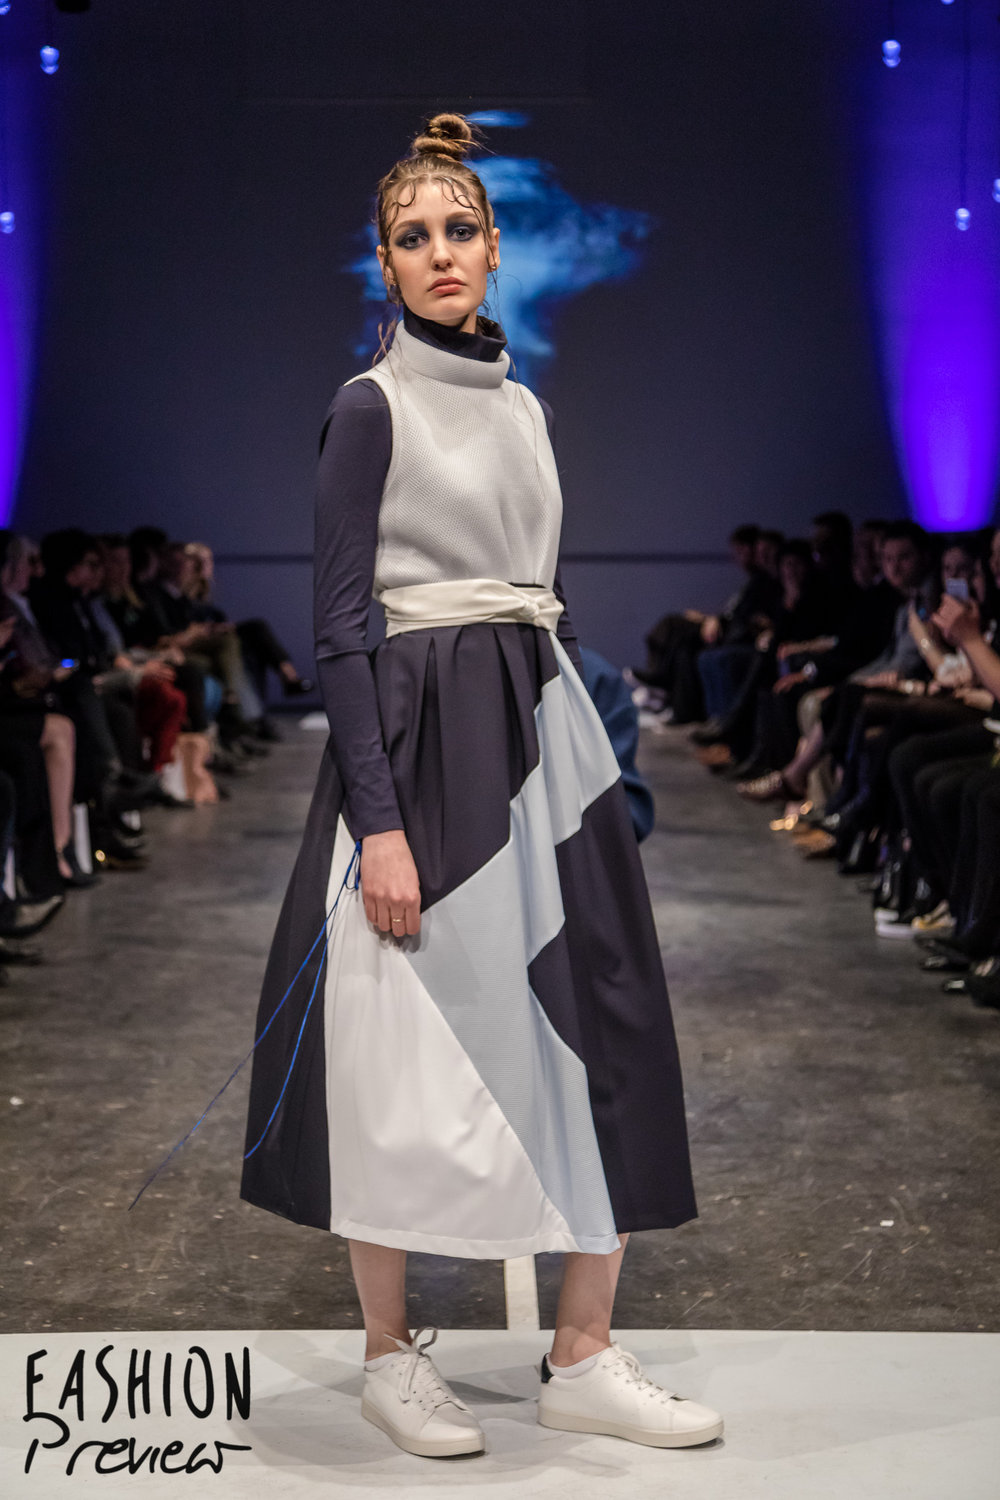 Fashion Preview 9 - Cegep Marie Victorin-07.jpg